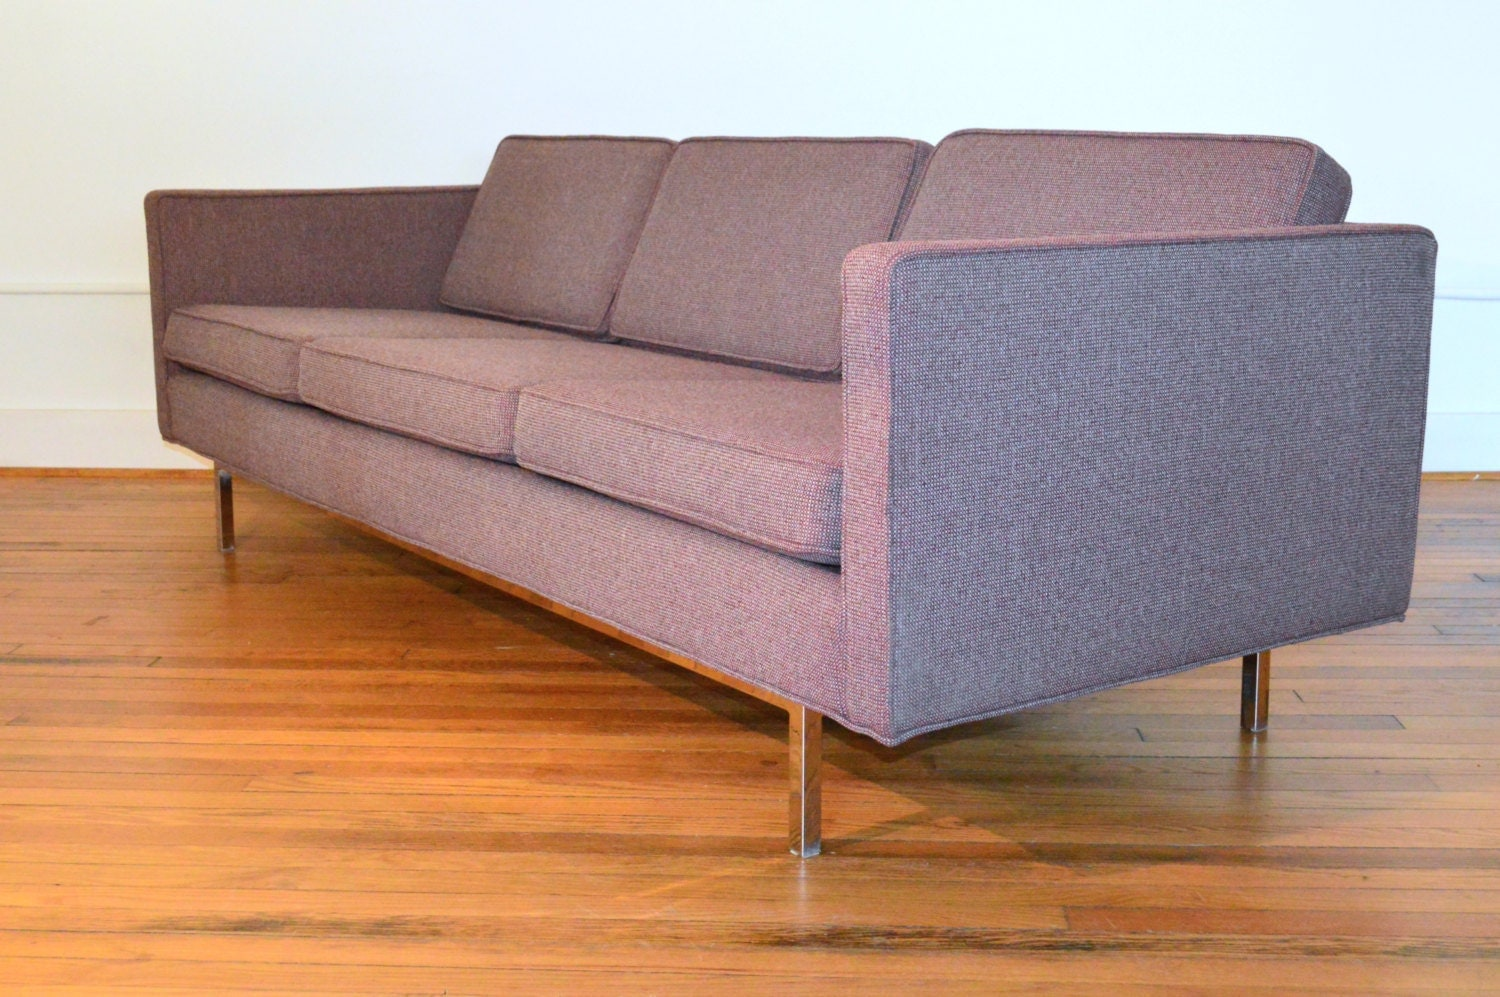 Milo Baughman For Thayer Coggin Sofa With Chrome Legs